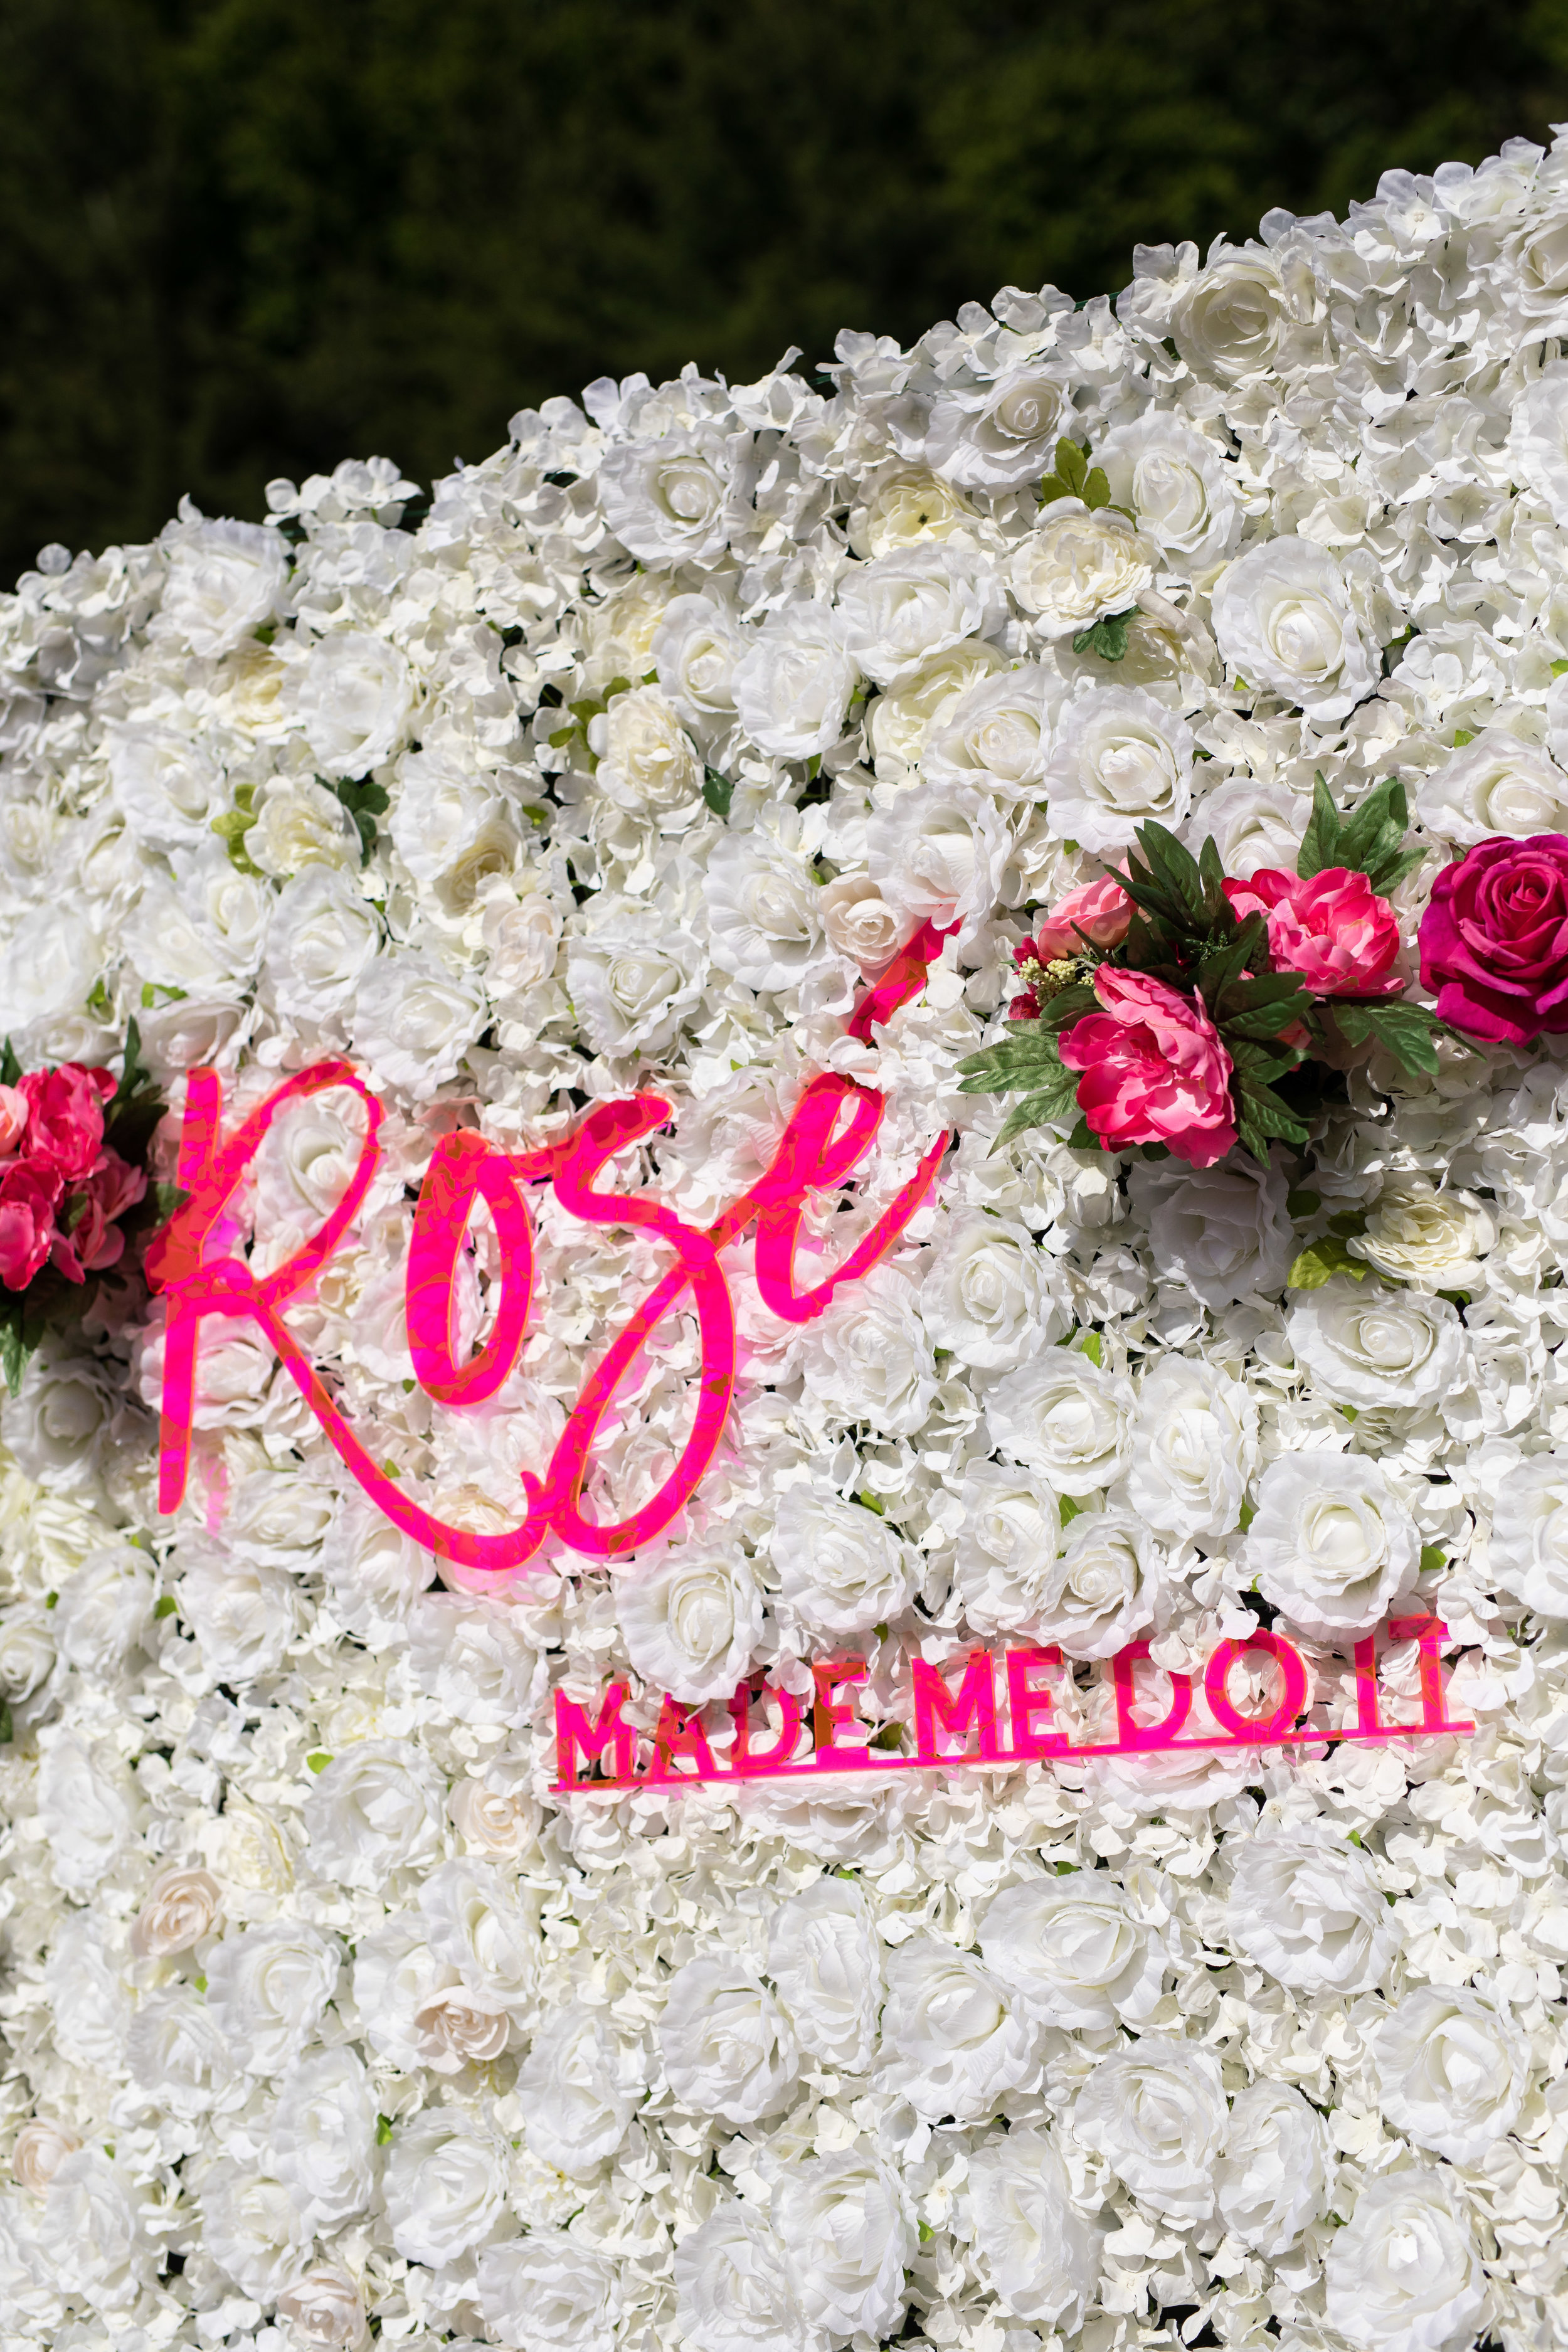 CT Rose Day 2019 - Norm_20.JPG